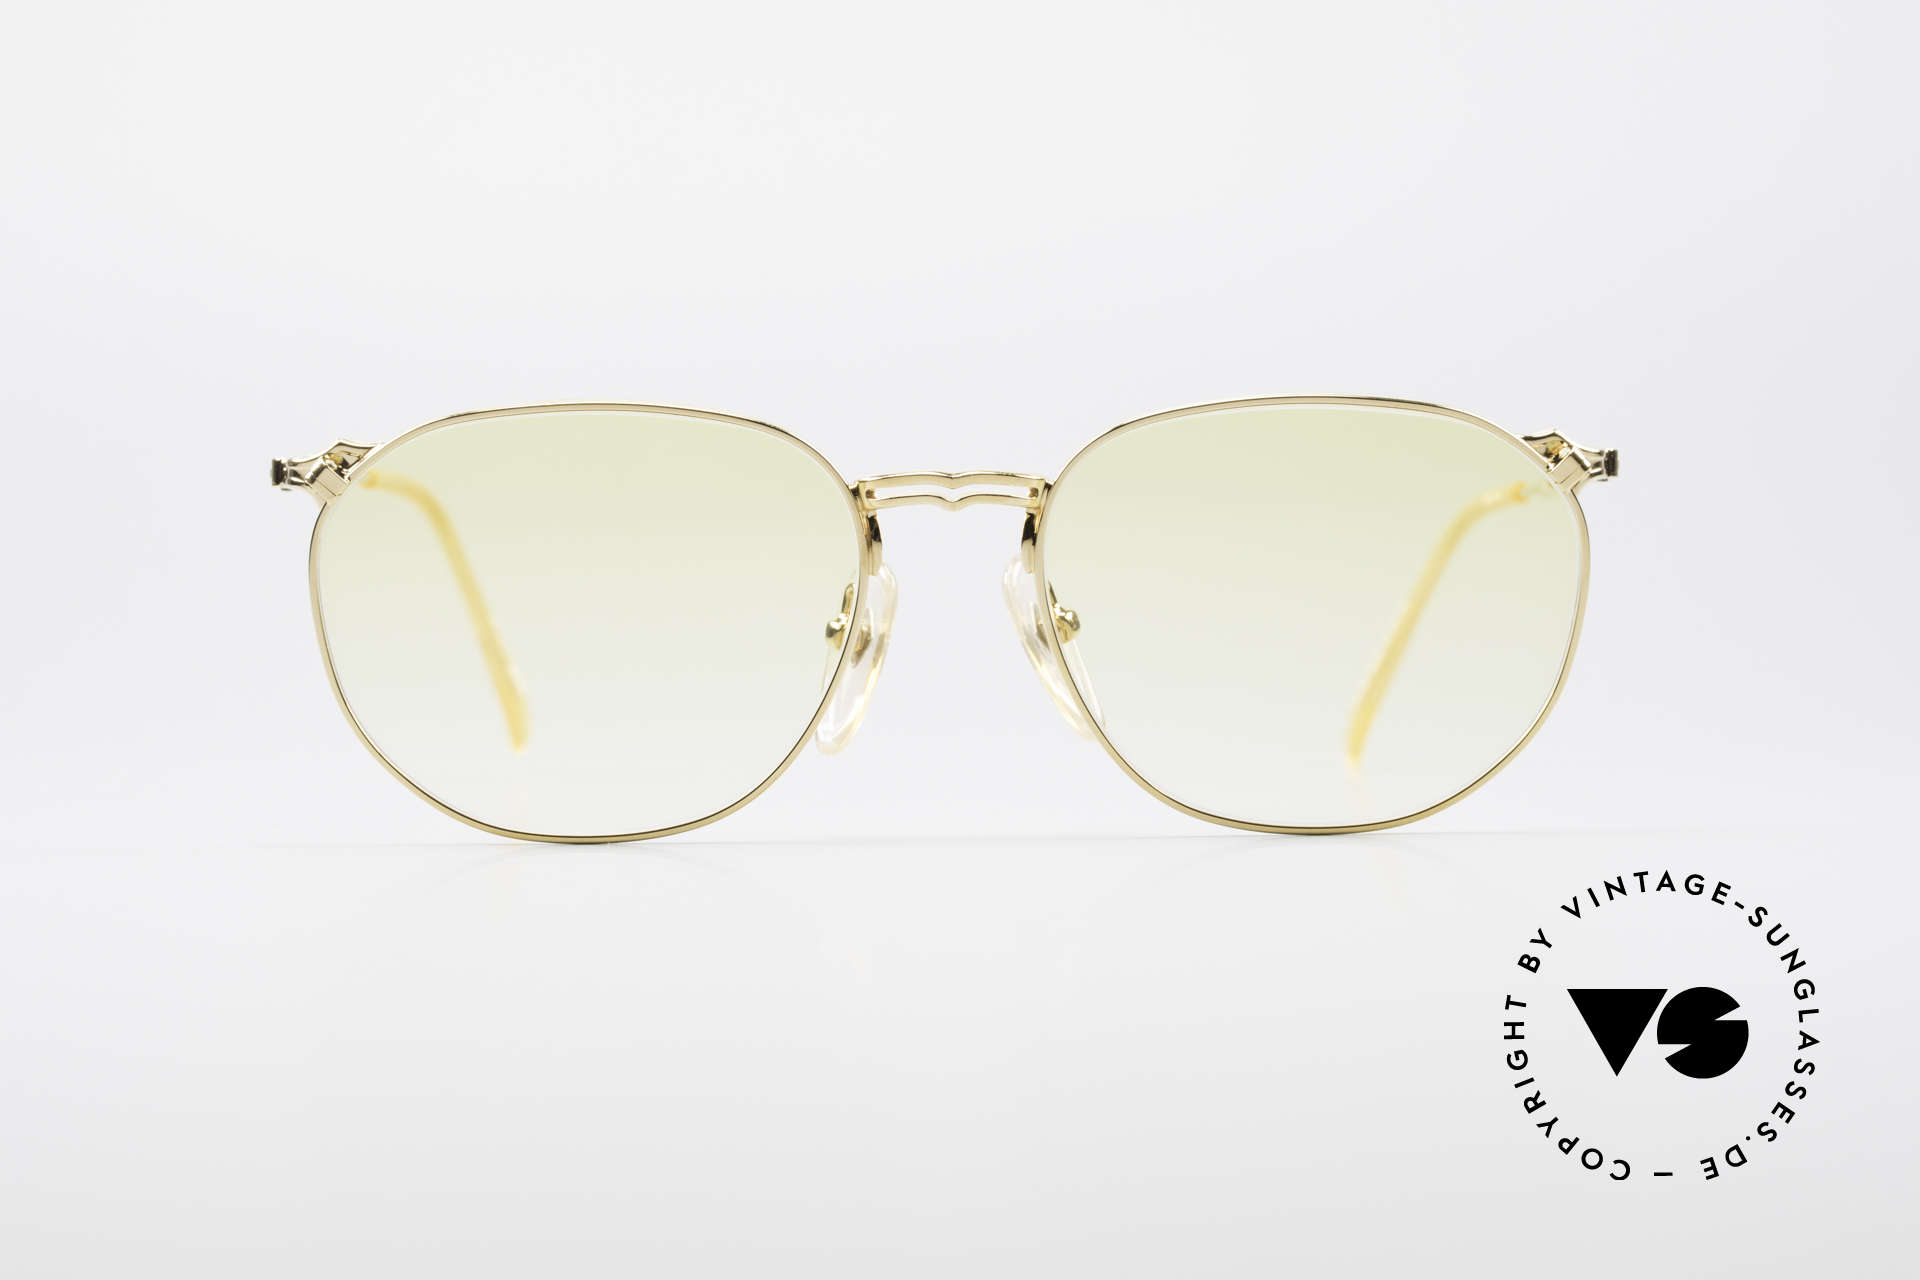 Jean Paul Gaultier 55-2173 Gold Plated Designer Frame, noble gold-plated frame with yellow gradient sun lenses, Made for Men and Women